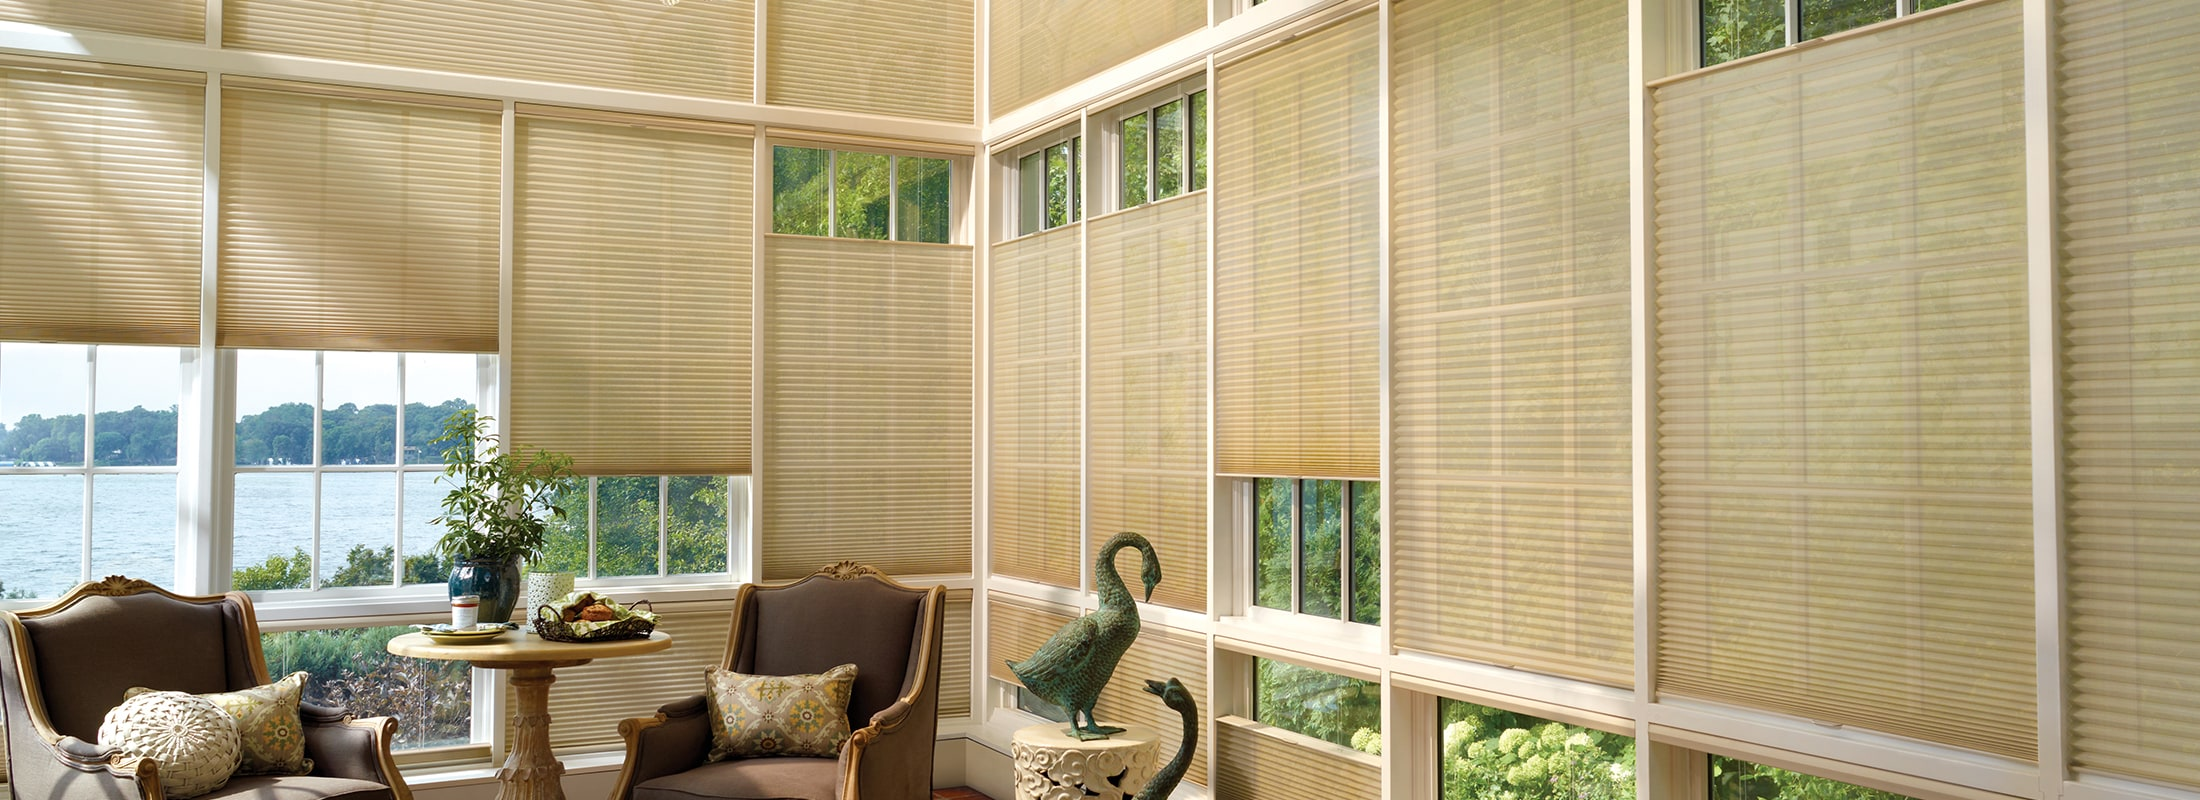 Blinds Toowoomba Top Down Bottom Up Window Shades Blinds Hunter Douglas